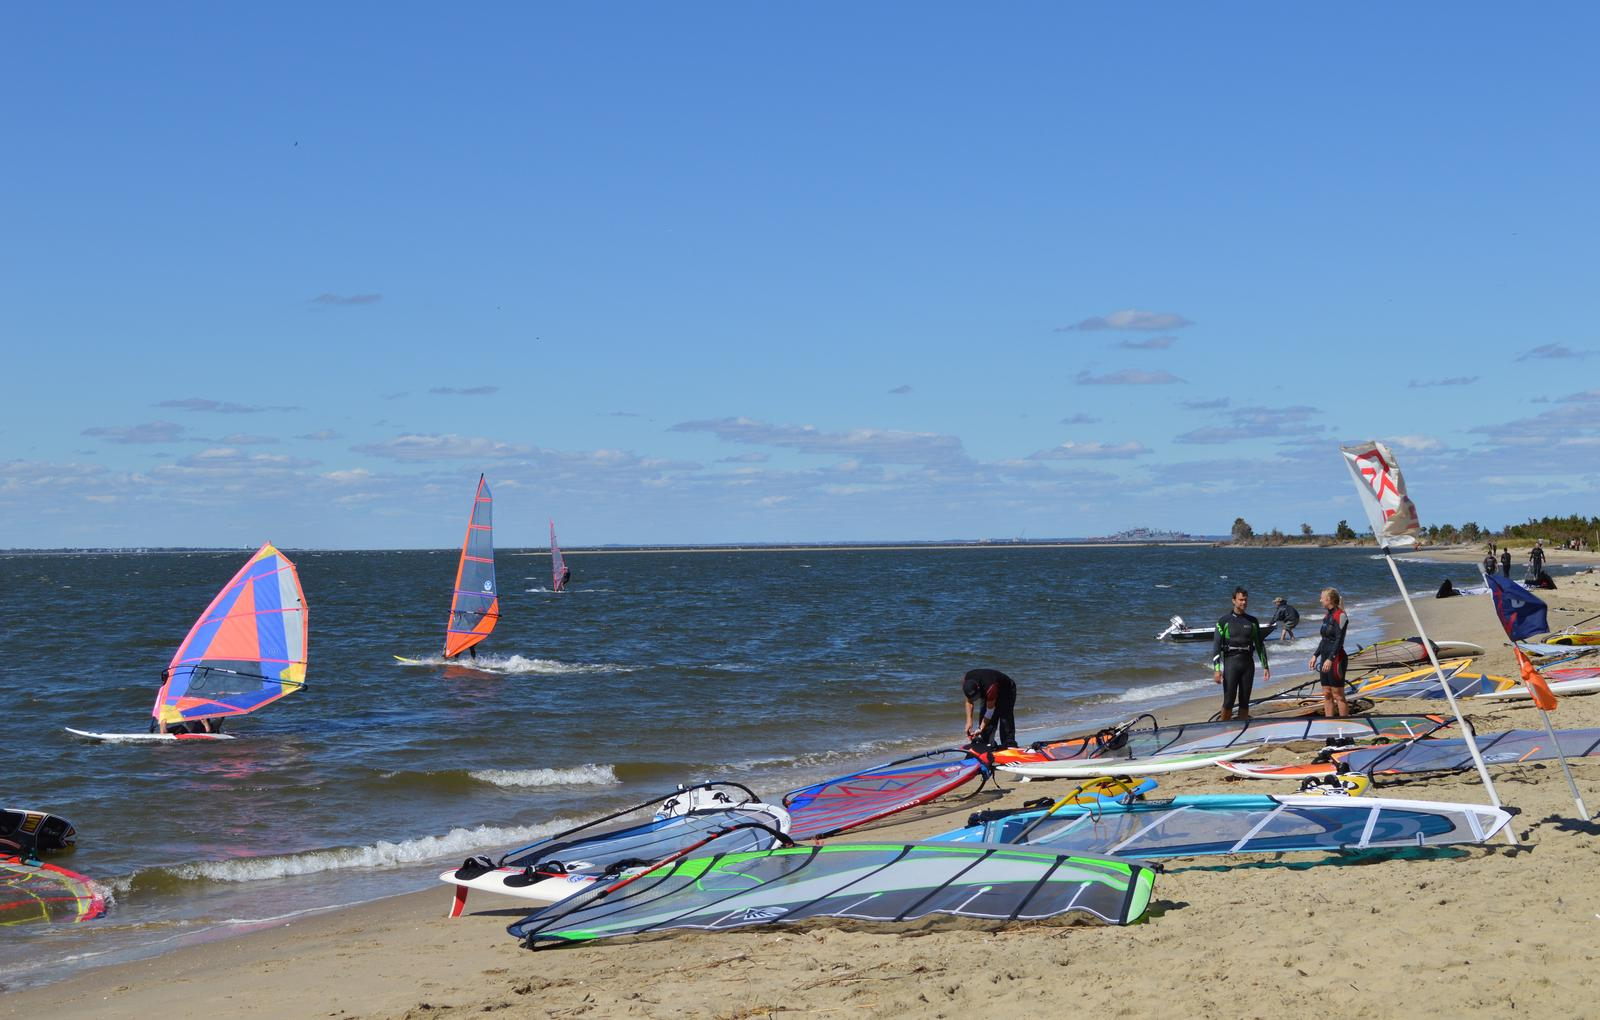 Windsurfers at bayside beaches